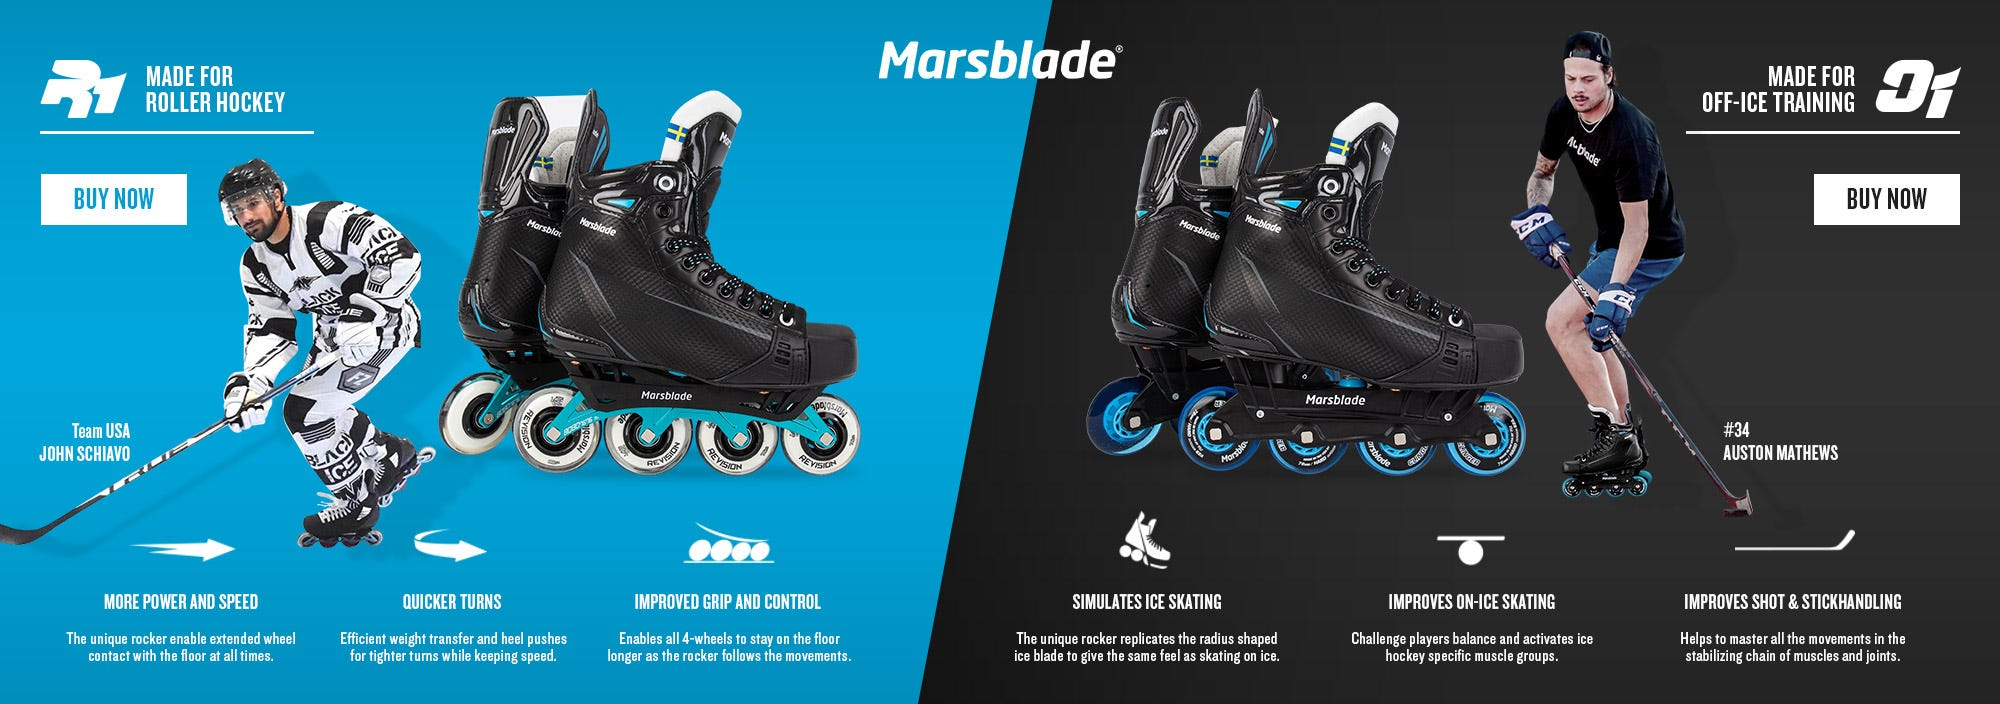 Marsblade: Make Yourself a Better Hockey Player